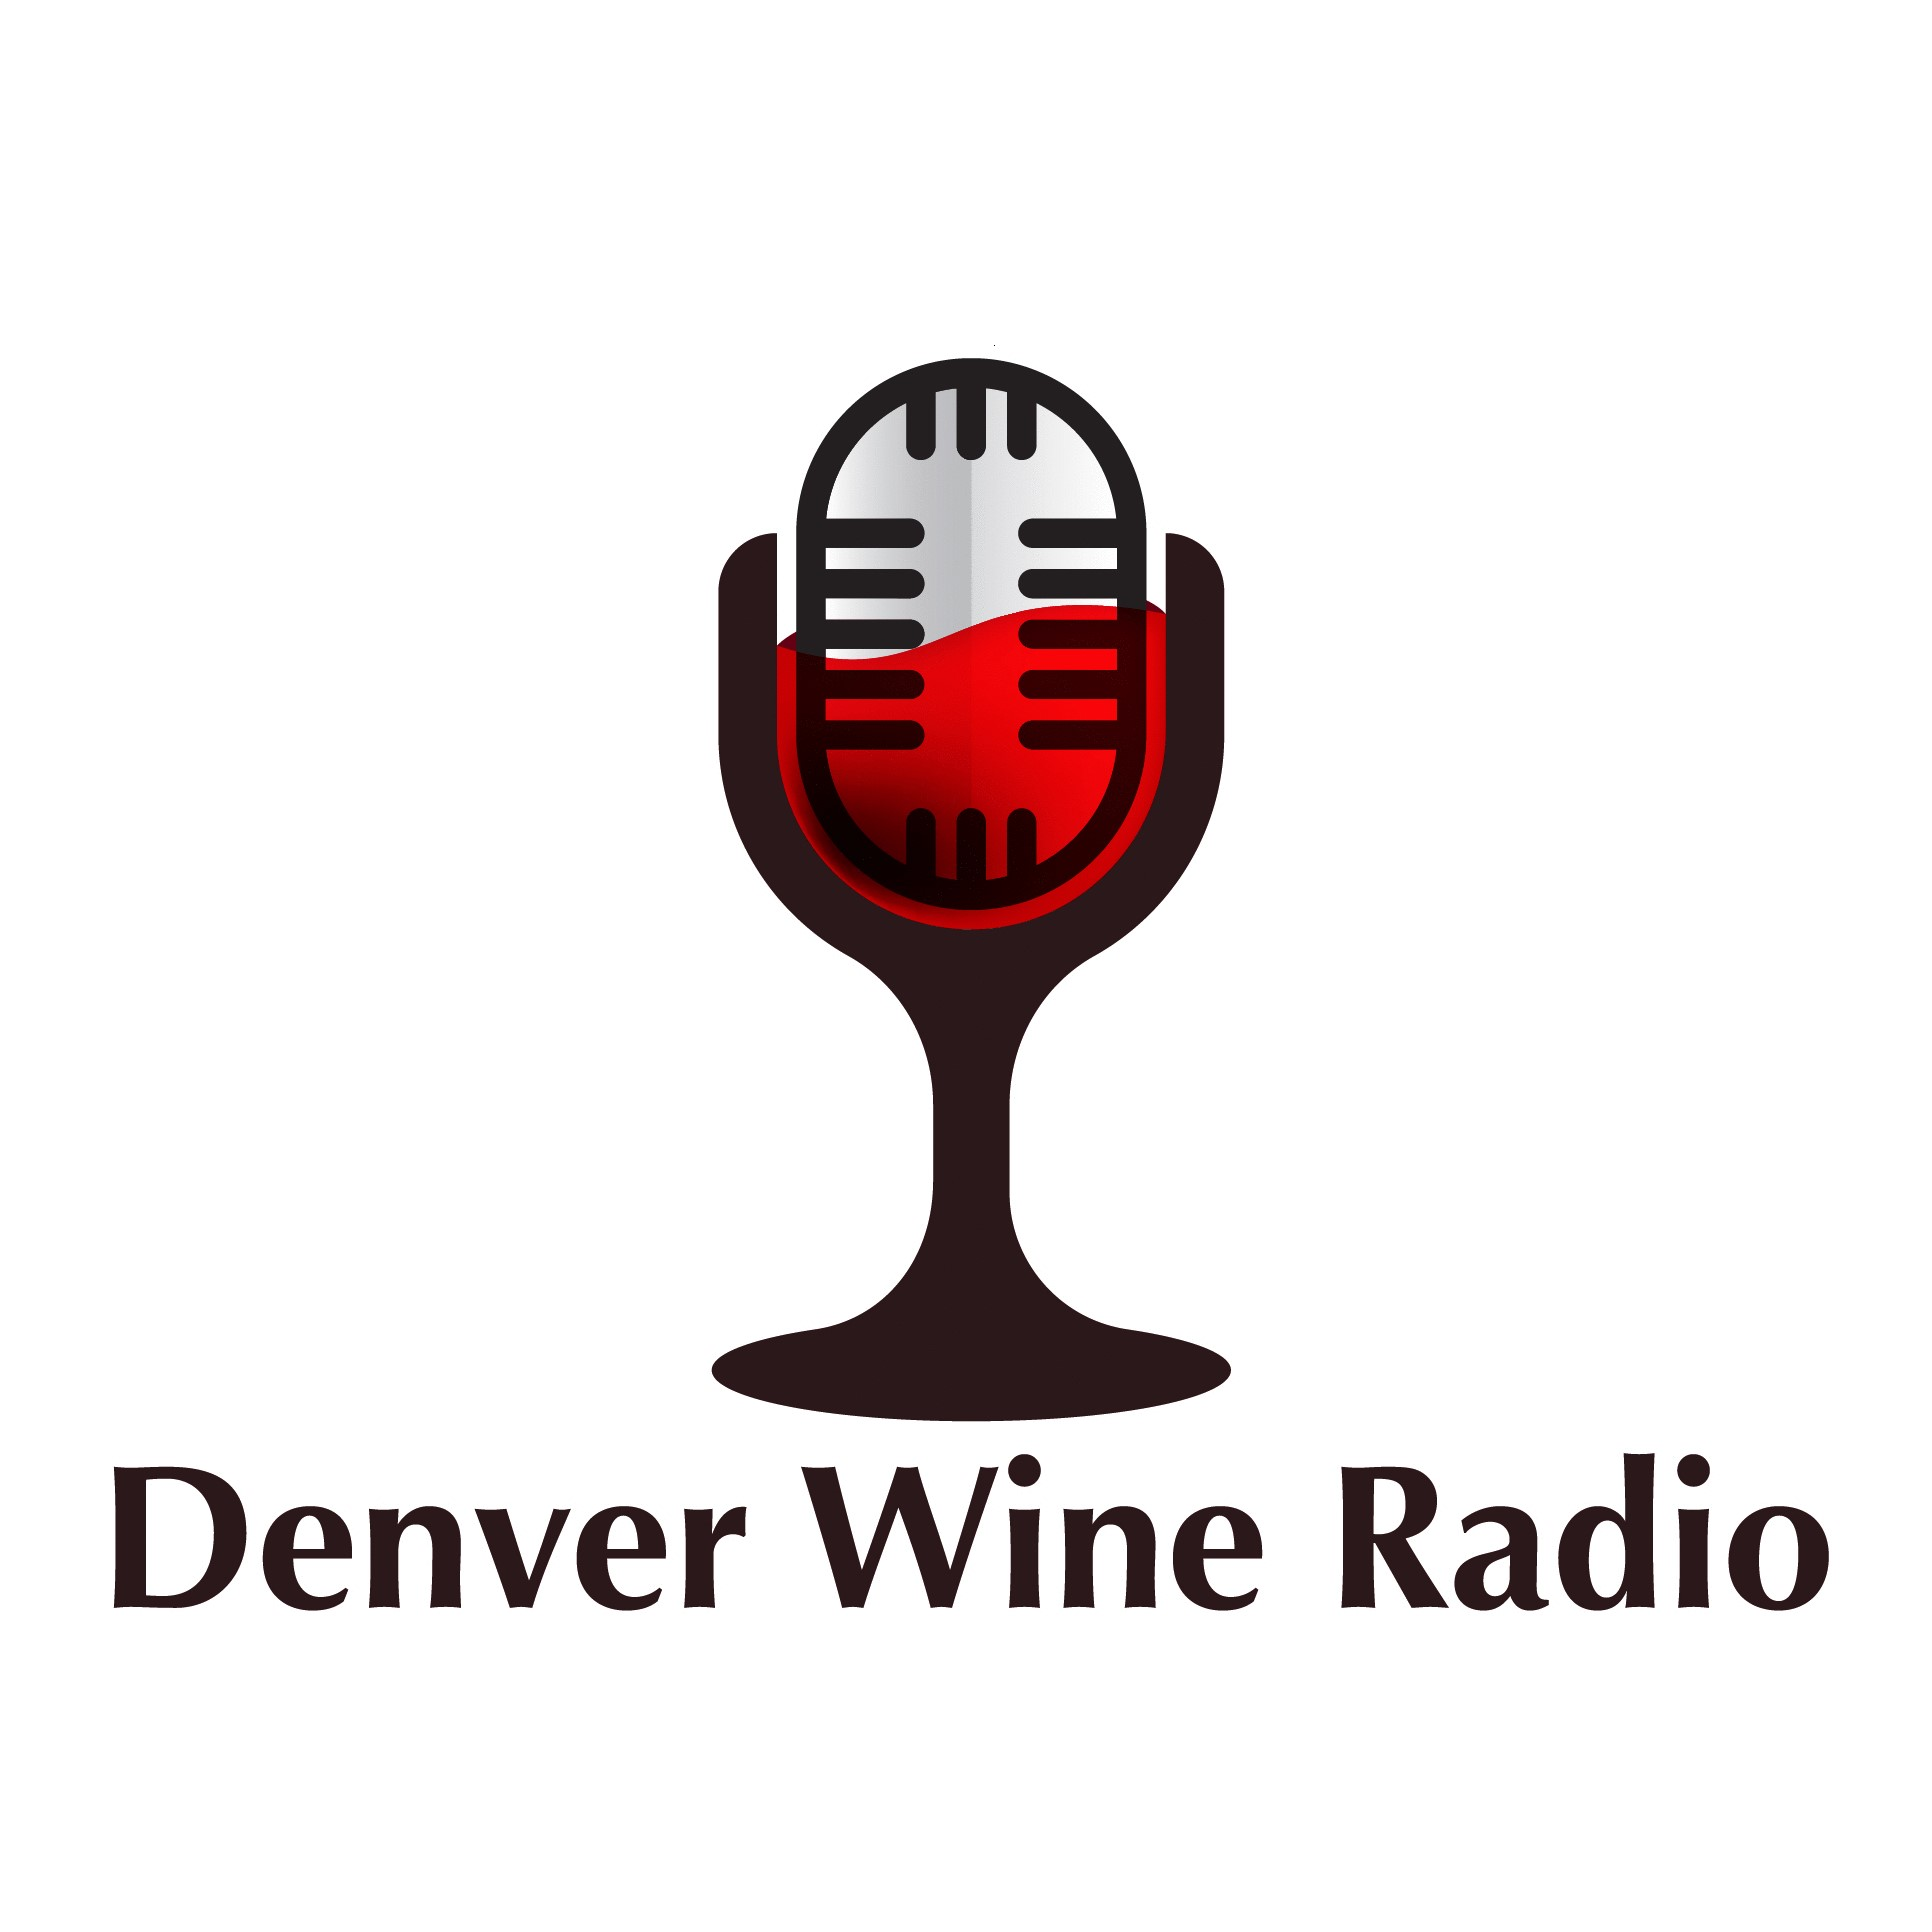 Denver Wine Radio